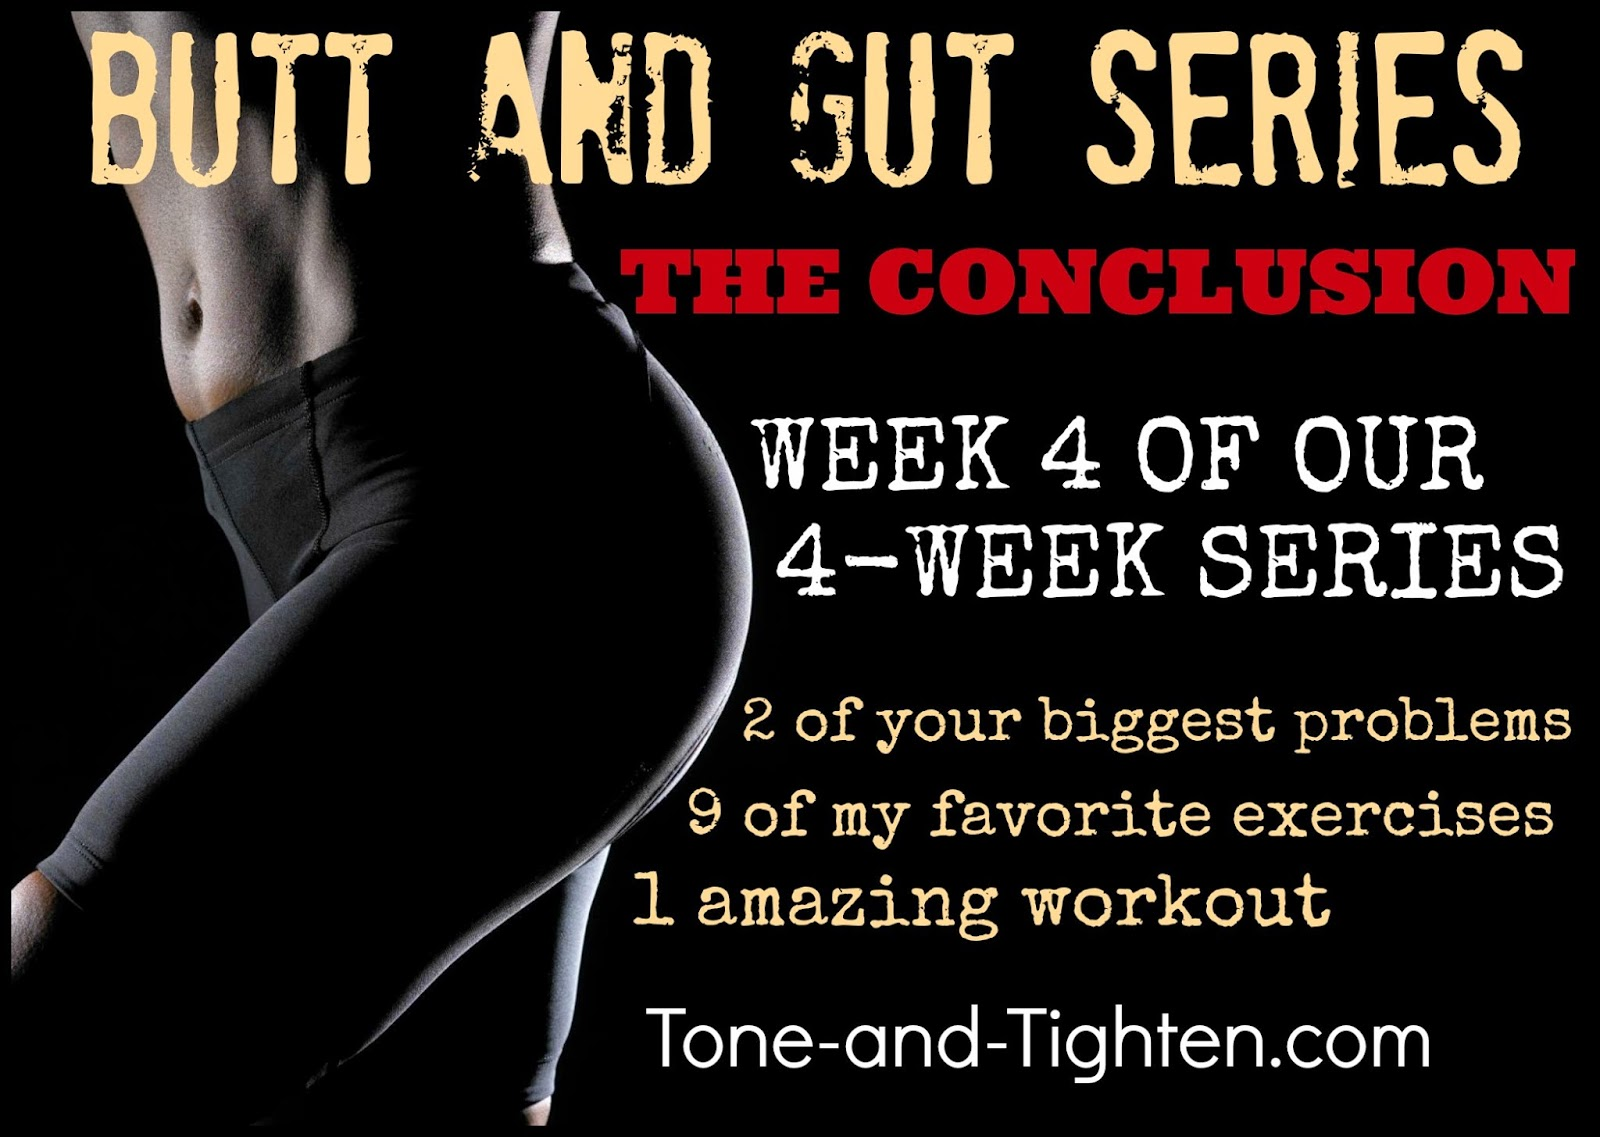 http://tone-and-tighten.com/2013/11/butt-and-gut-workout-series-week-4.html